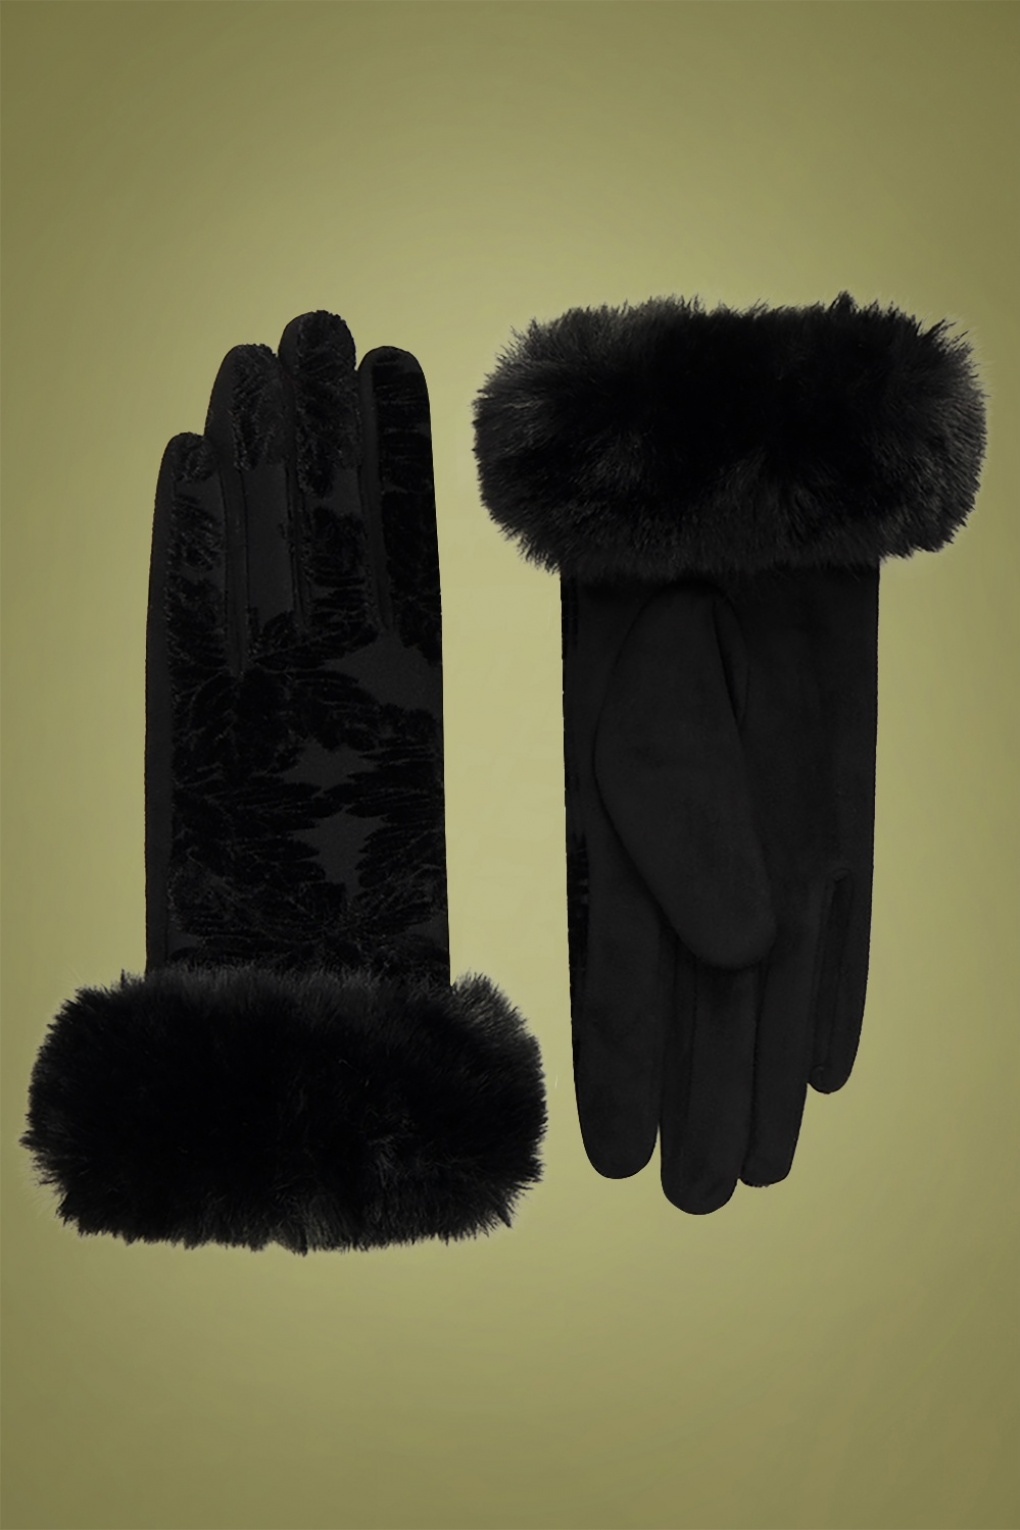 Vintage Style Gloves- Long, Wrist, Evening, Day, Leather, Lace 50s Bailey Gloves in Black £18.06 AT vintagedancer.com